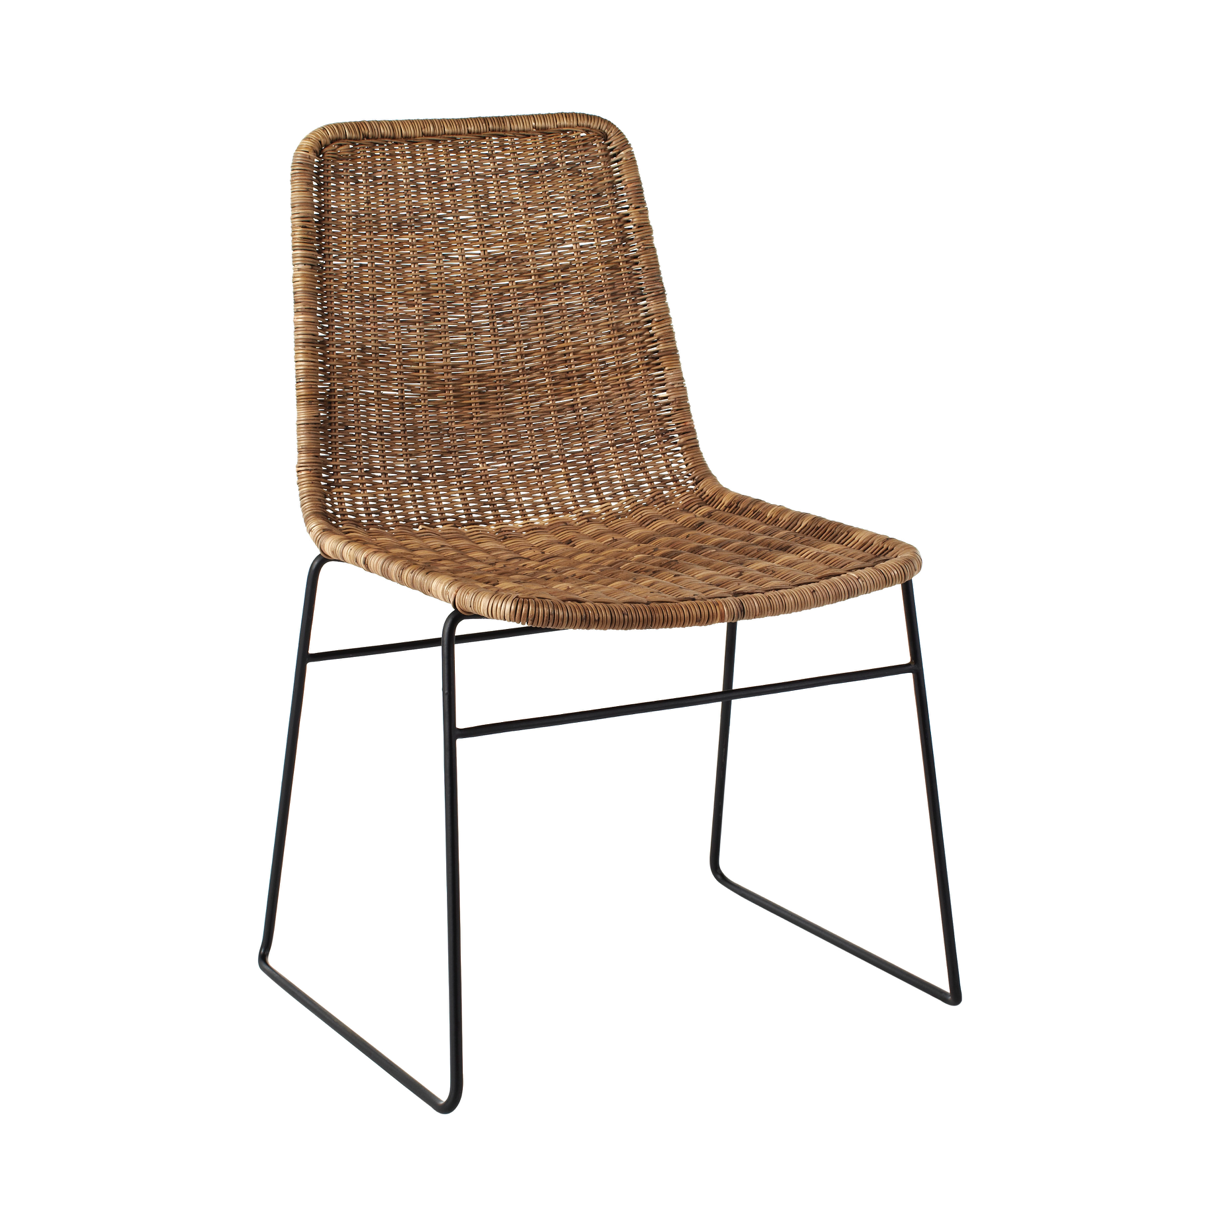 Olivia Dining Chair | Greywash Rattan